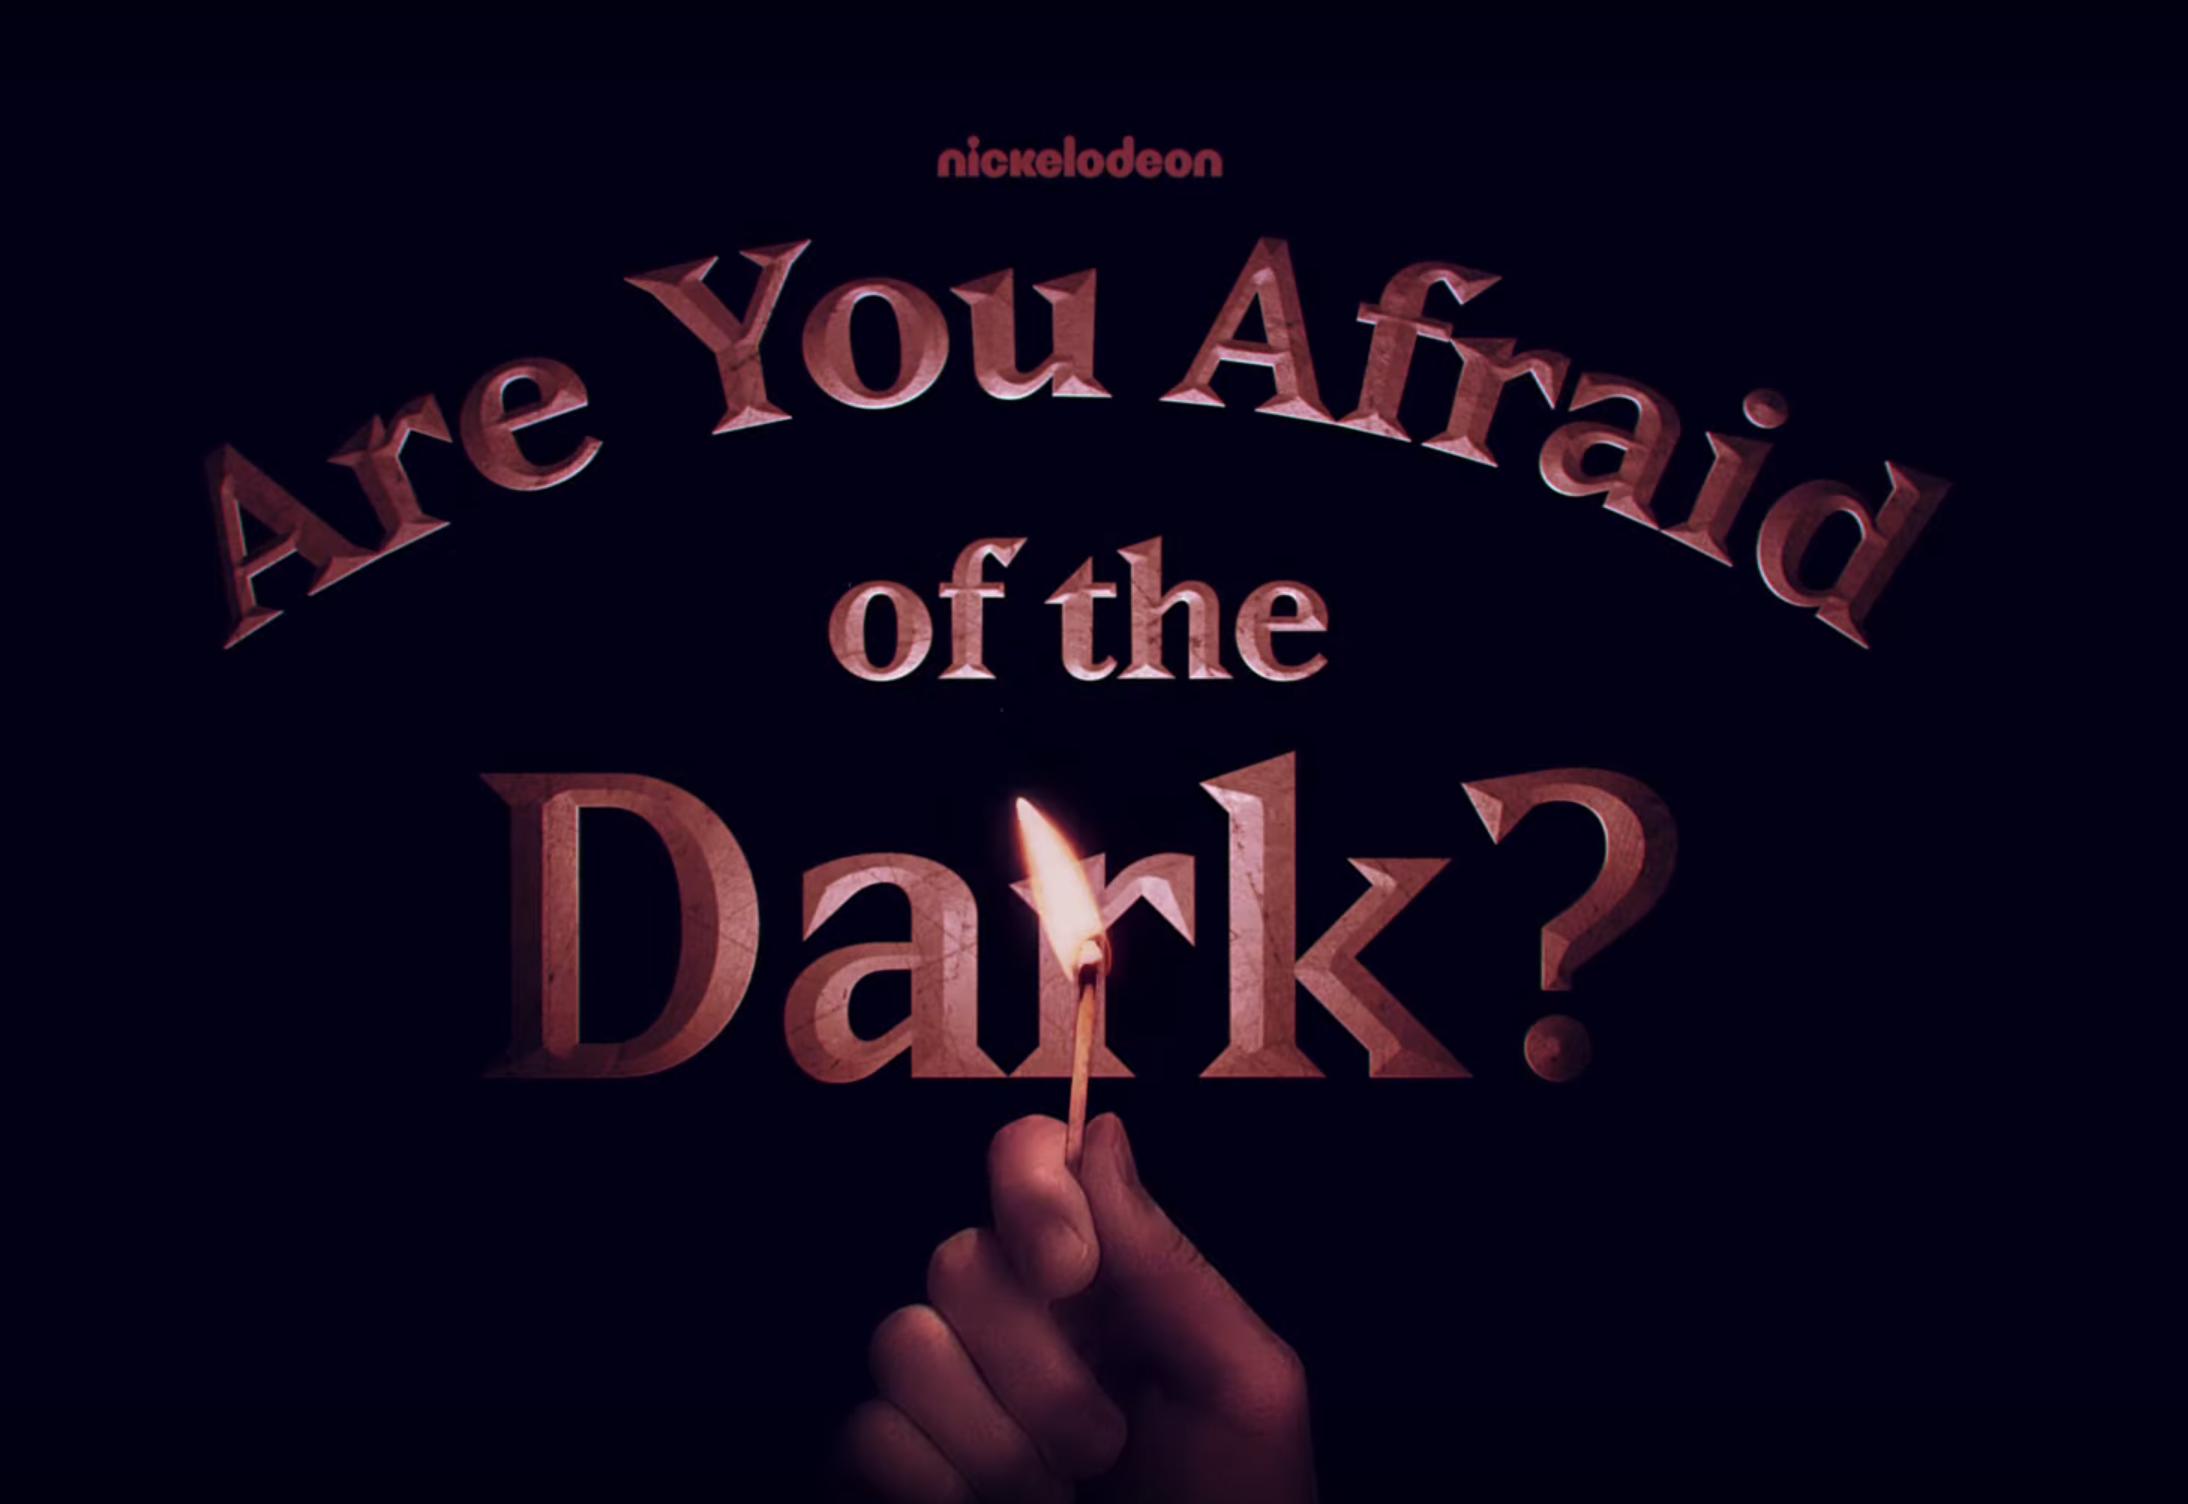 Submitted for the approval of the Midnight Society: the first teaser for the <em>Are You Afraid of the Dark?</em> reboot